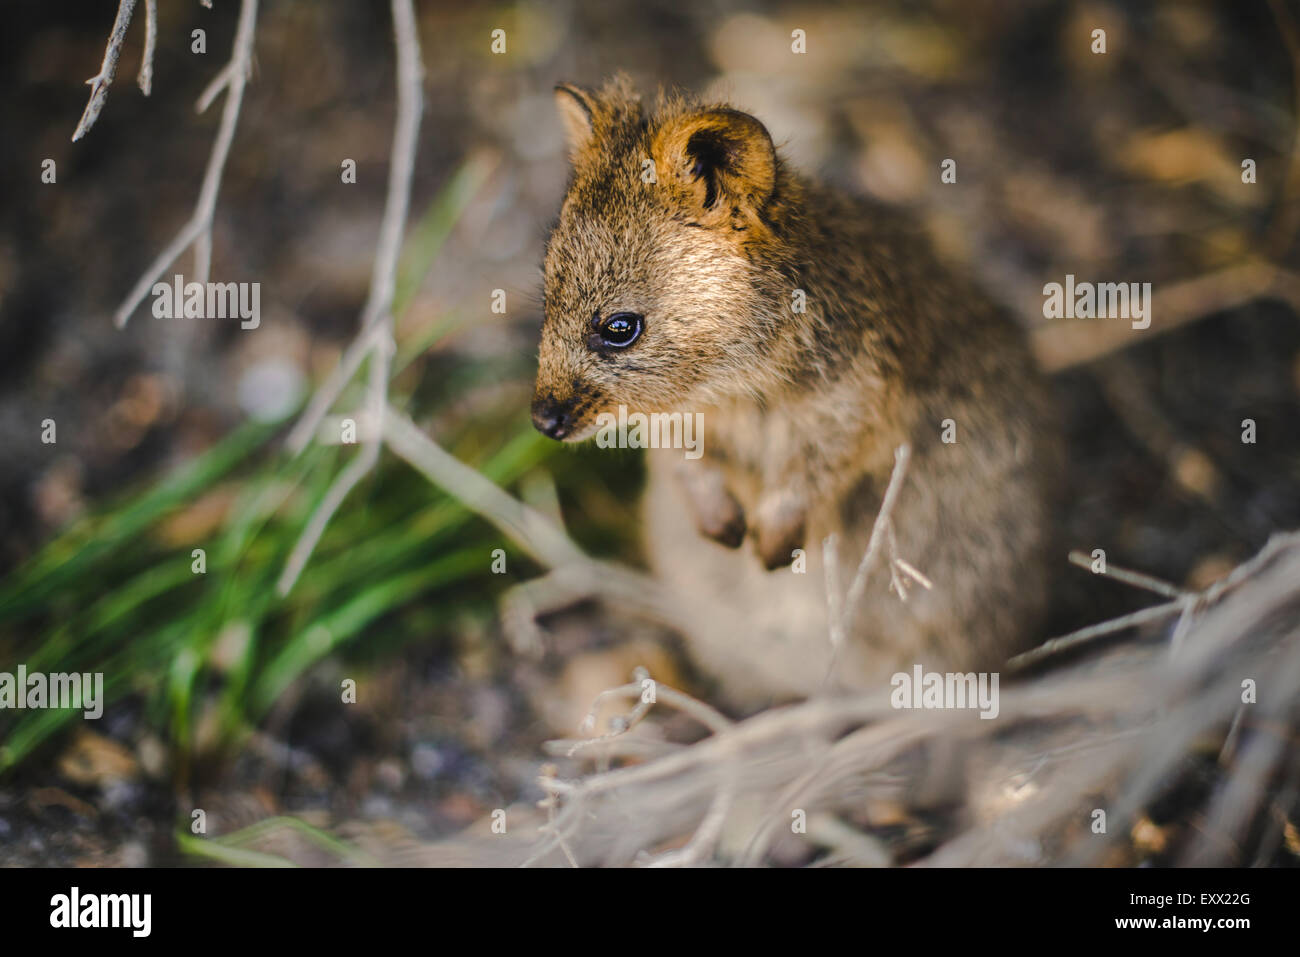 Quokka in bushes, close-up Stock Photo - Alamy